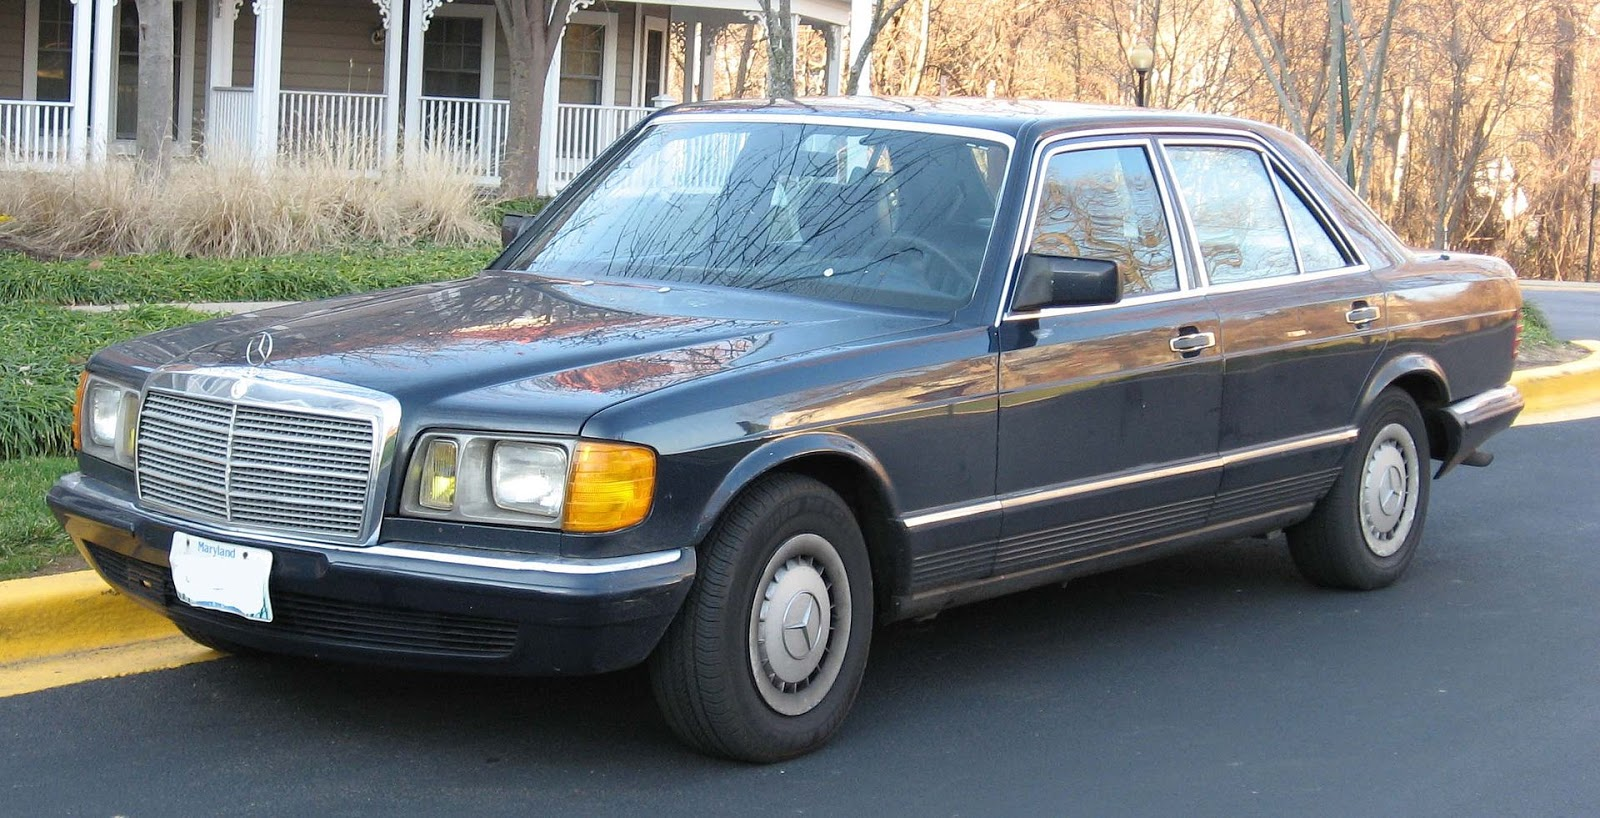 Mercedes Benz W126 Car Guys Paradise M117 Engine Approximately 22000 Units Per Year Of Grey Market Including The 500 Se Sel Were Sold In Early 1980s According To Contemporary Reports